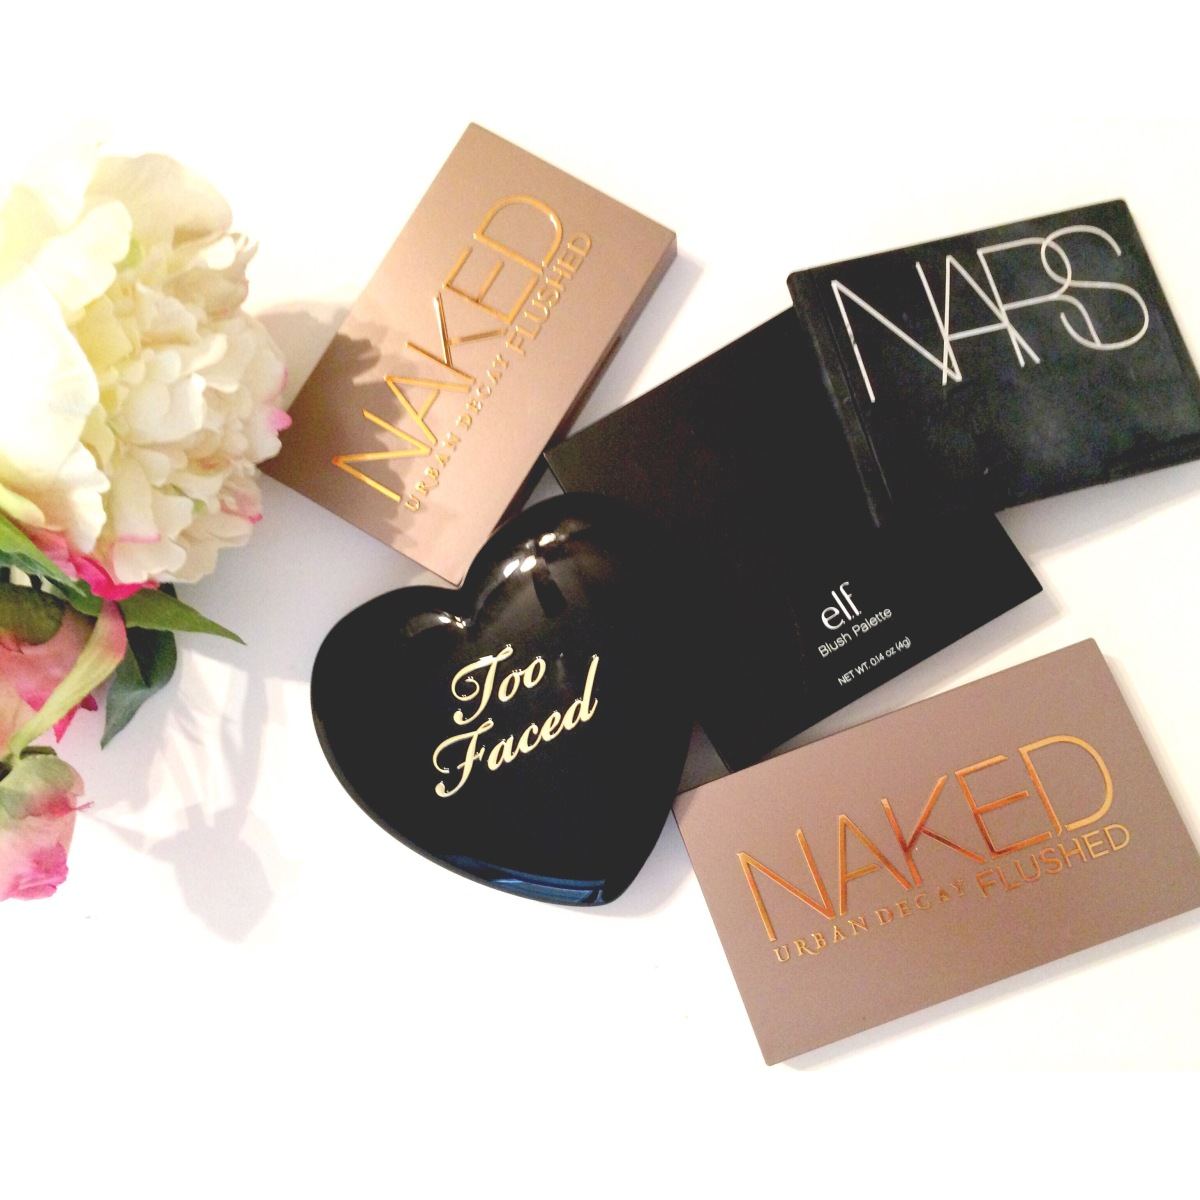 Blush/Bronzer Face Palettes | Are They WorthIt?